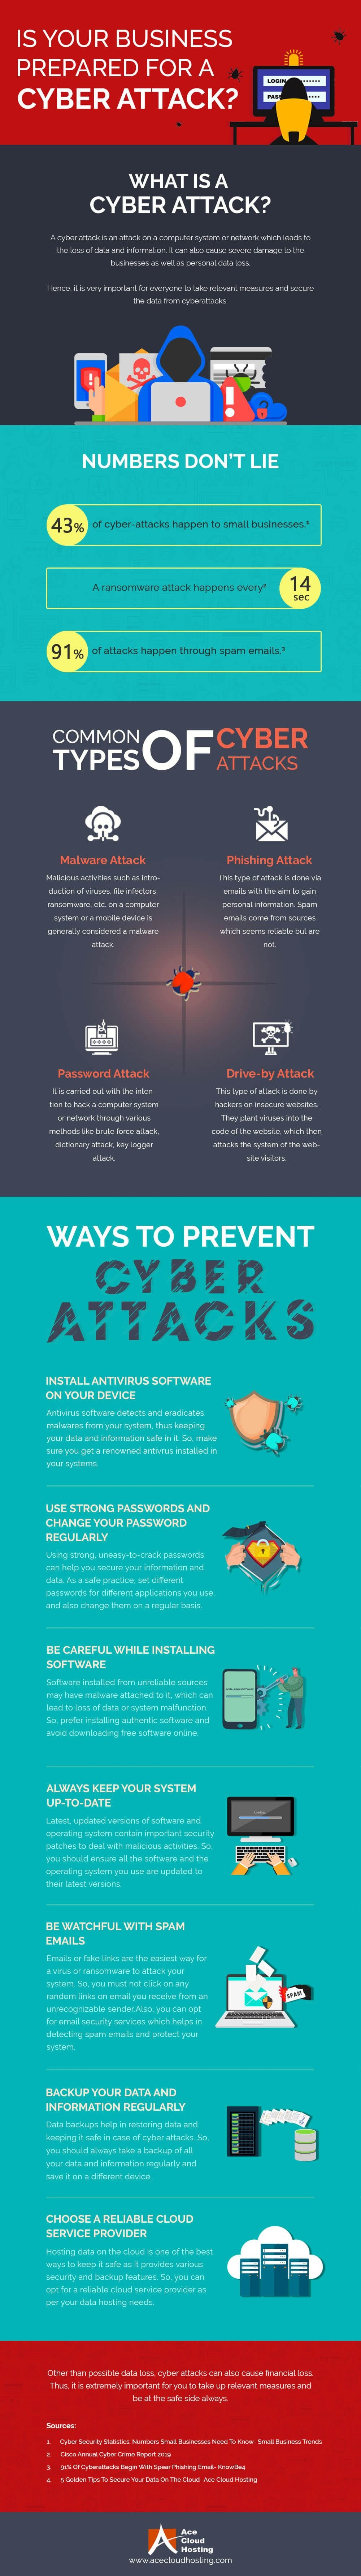 Is Your Business Prepared For A Cyber Attack? #infographic